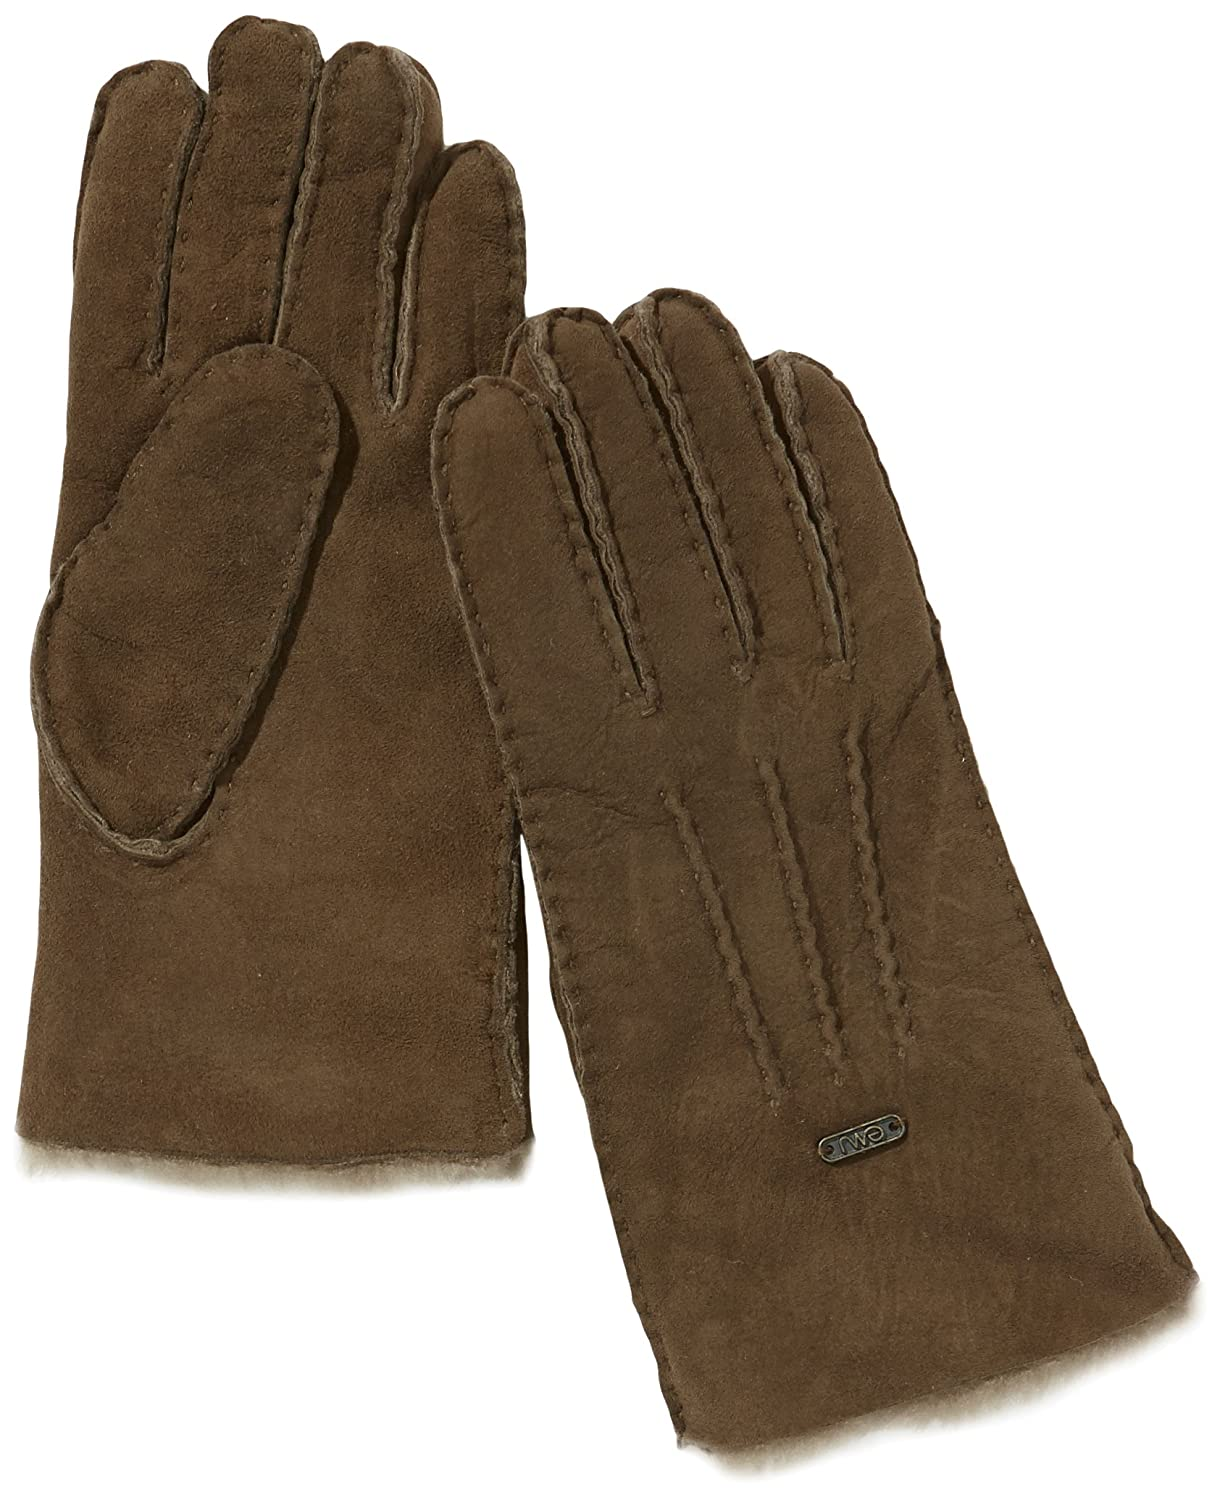 Womens leather gloves australia - Emu Australia Beech Forest Women S Gloves